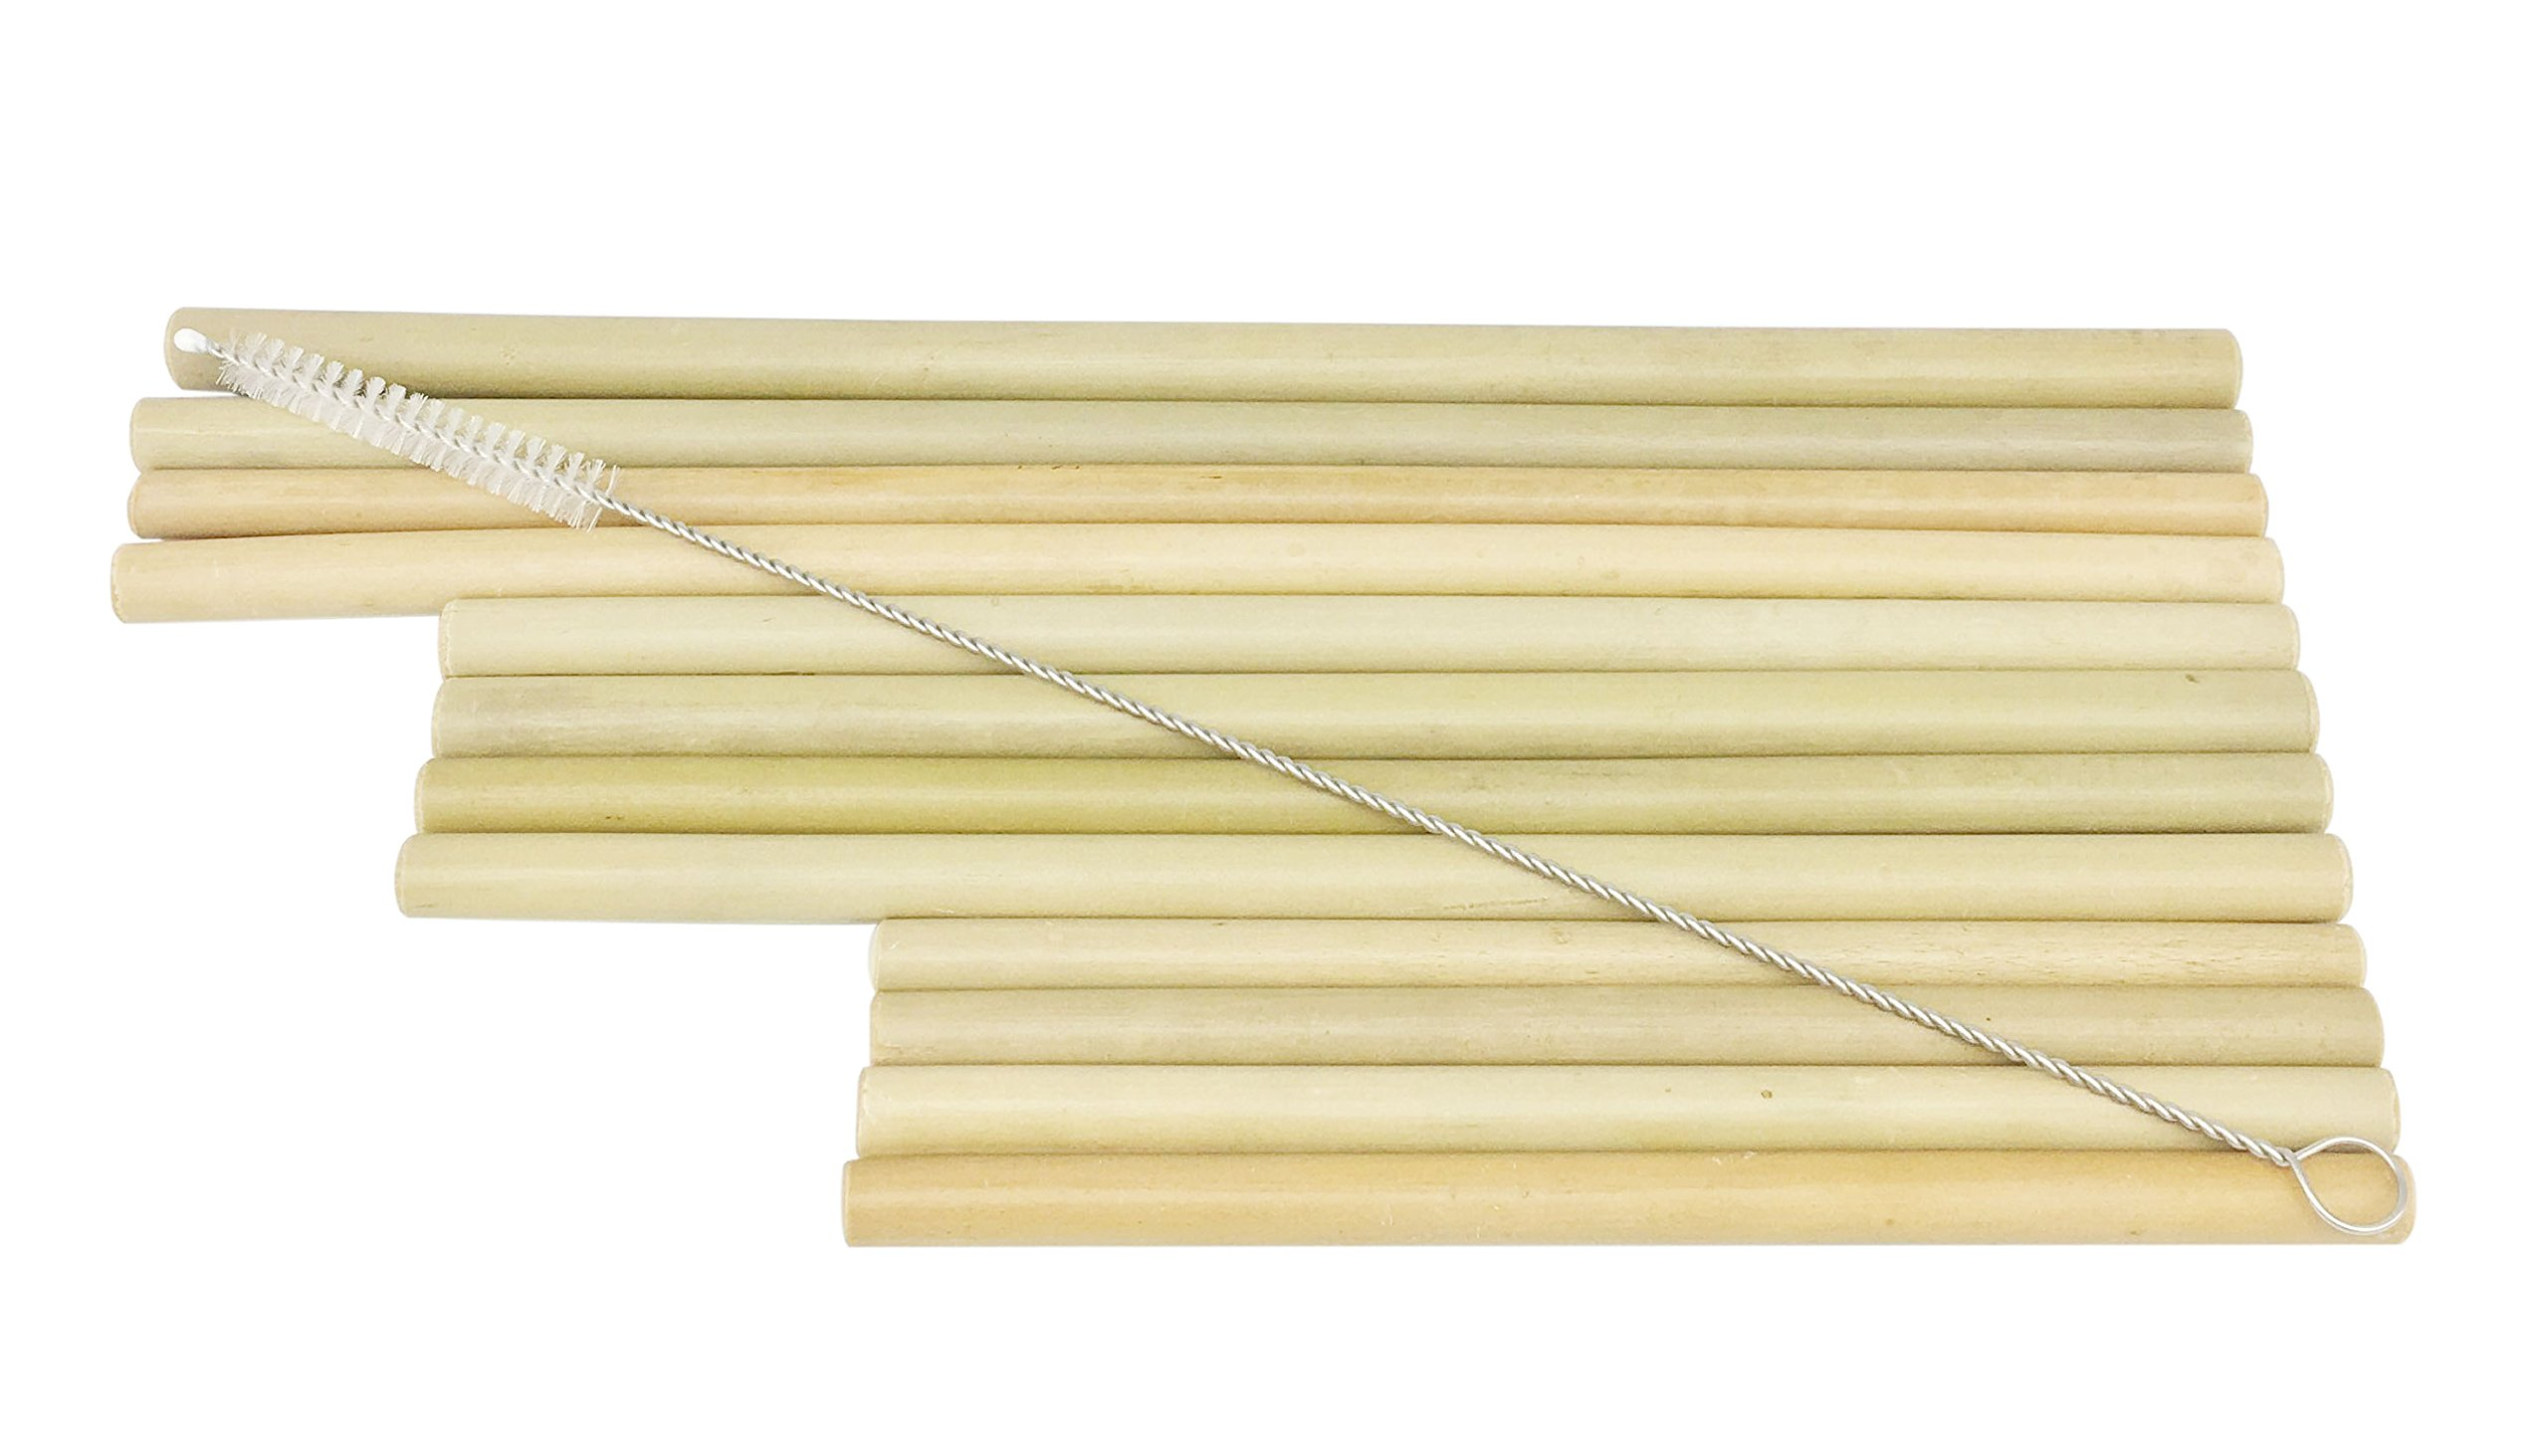 Natural Bamboo Drinking Straws 12 Pcs of Three Length (6In 8In 9In) With Straw Brush For All Types Of Cups